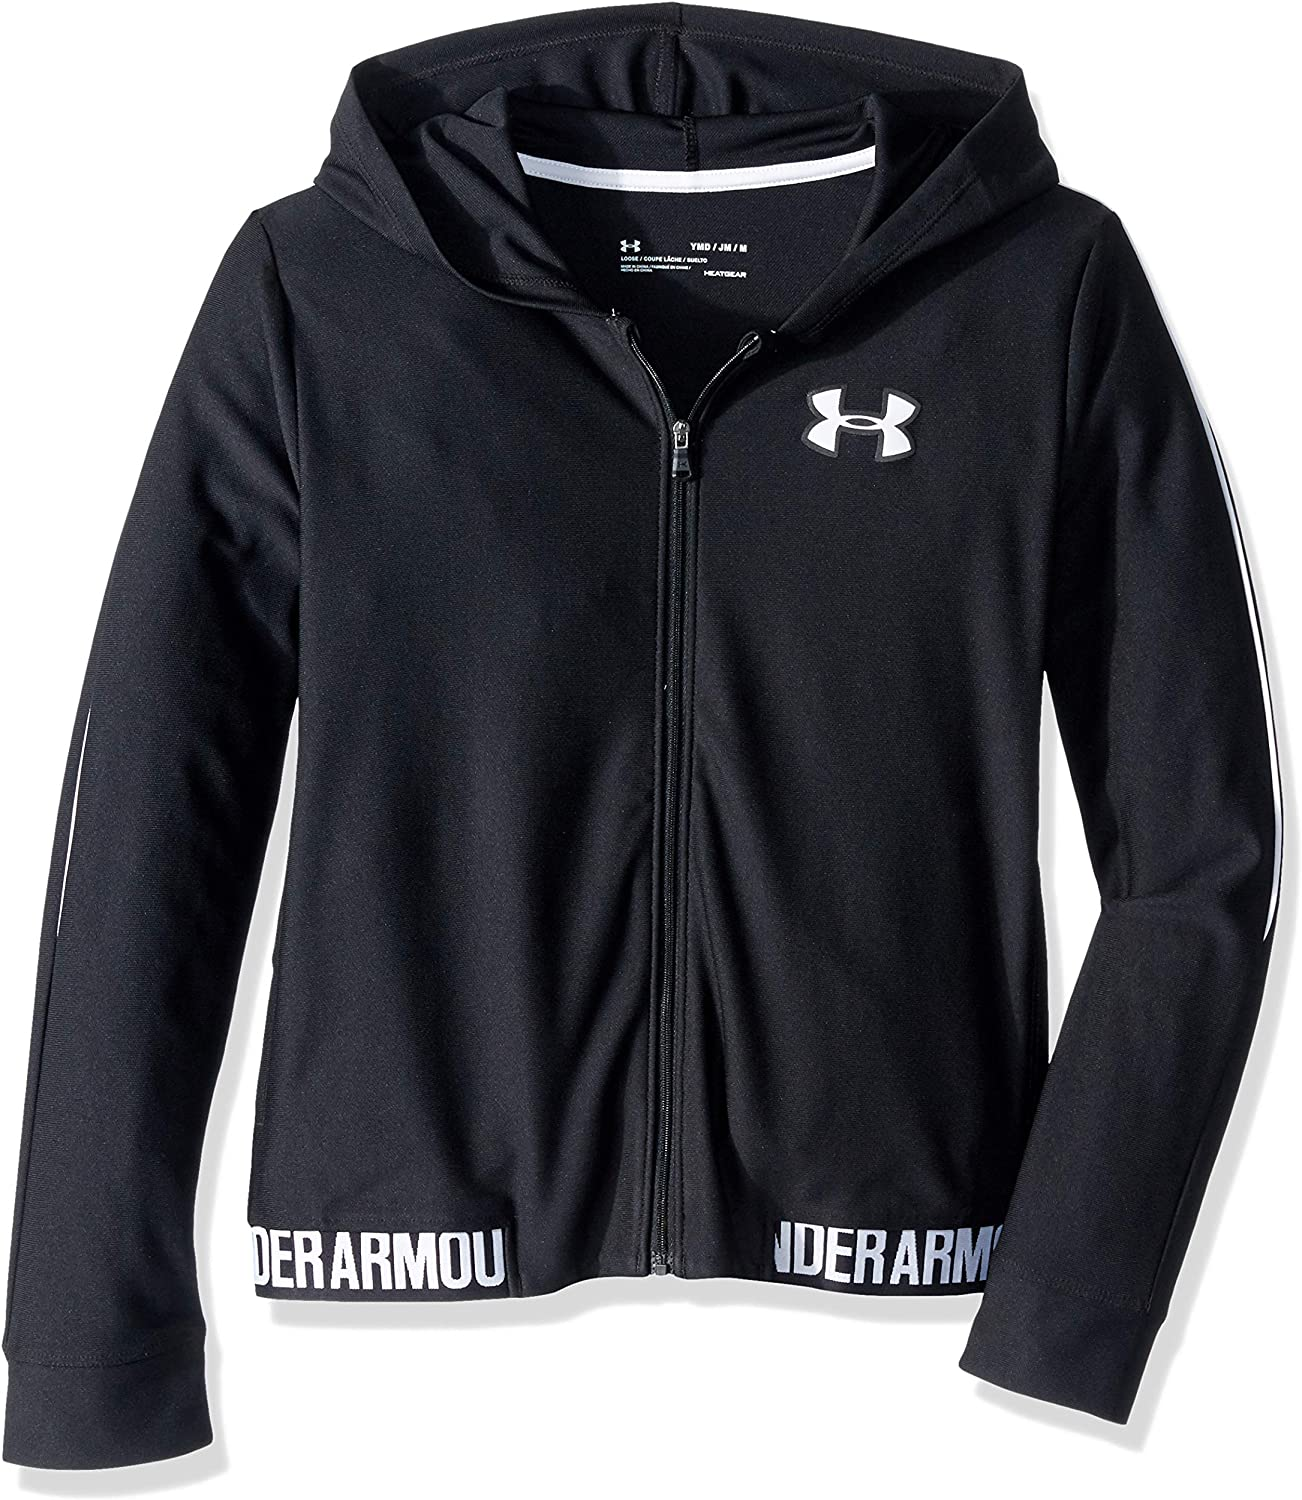 Under Armour Girls' Play Up Full Zip Jacket